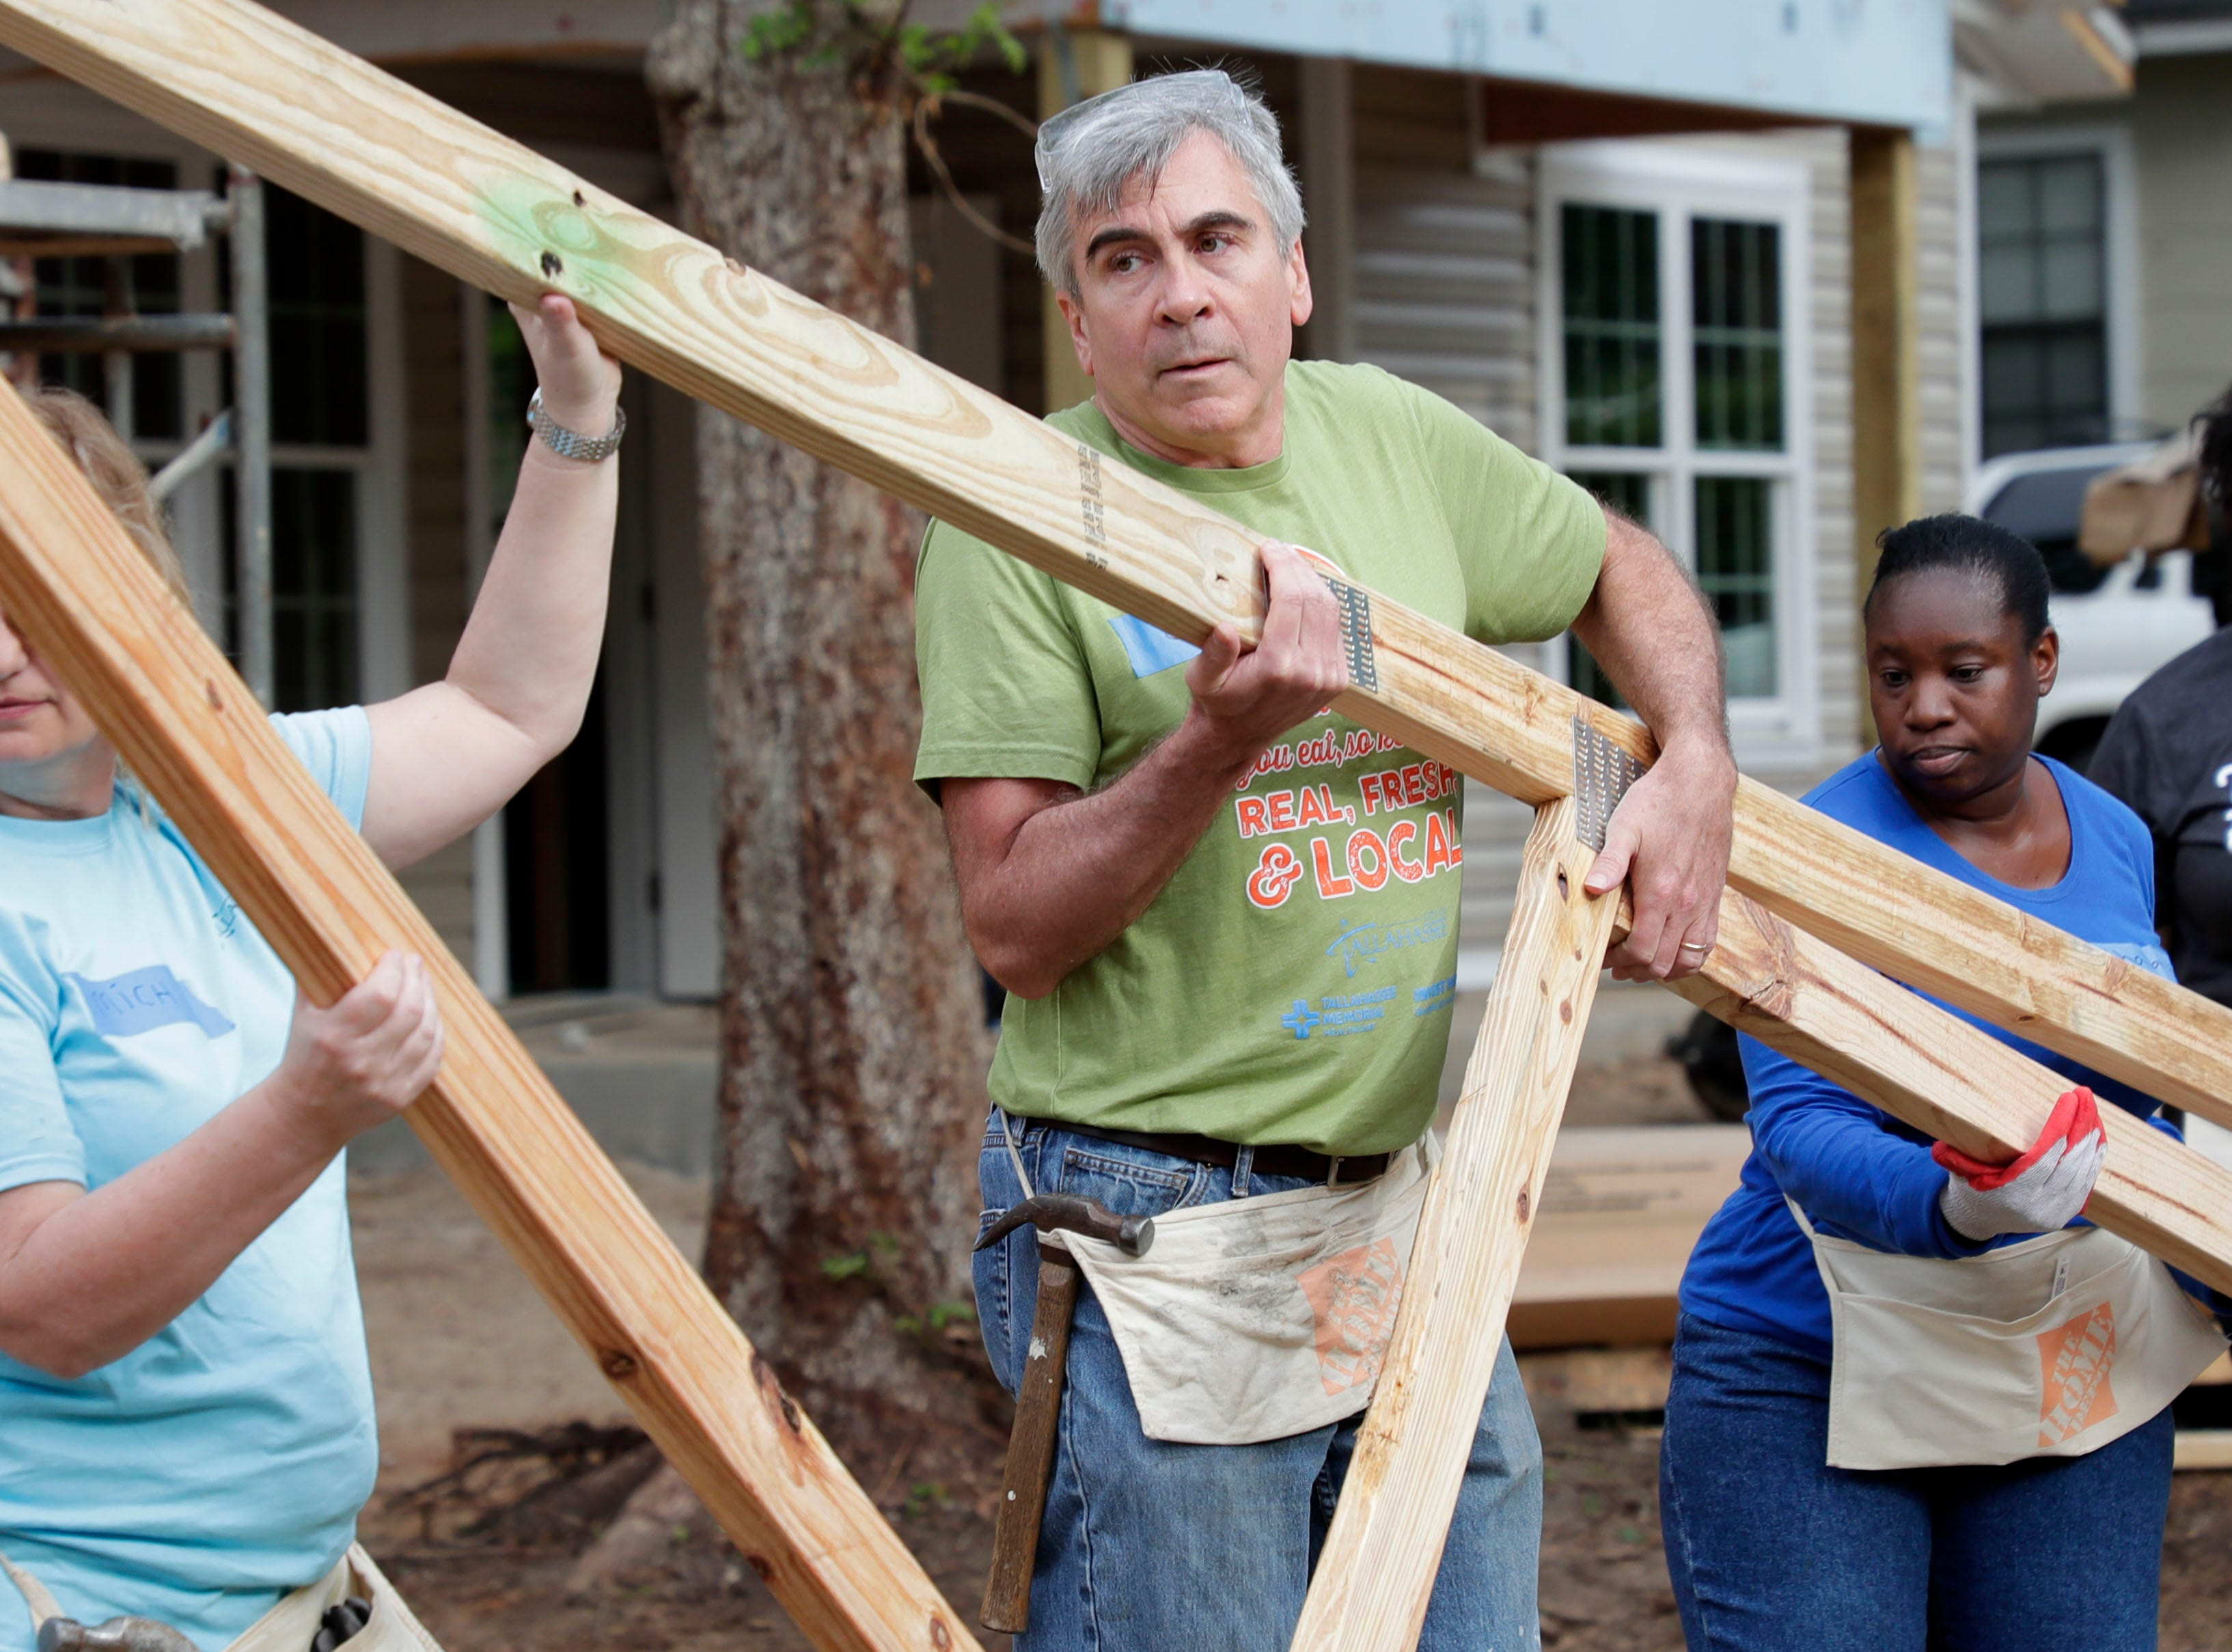 Treasurer-Clerk Jim Cooke along with other volunteers move the framework for the roof of the future home for Recha Evans and her family Friday, April 12, 2019. Elected and appointed city officials, employee volunteers and representatives from Habitat for Humanity work together to build Evans' home.